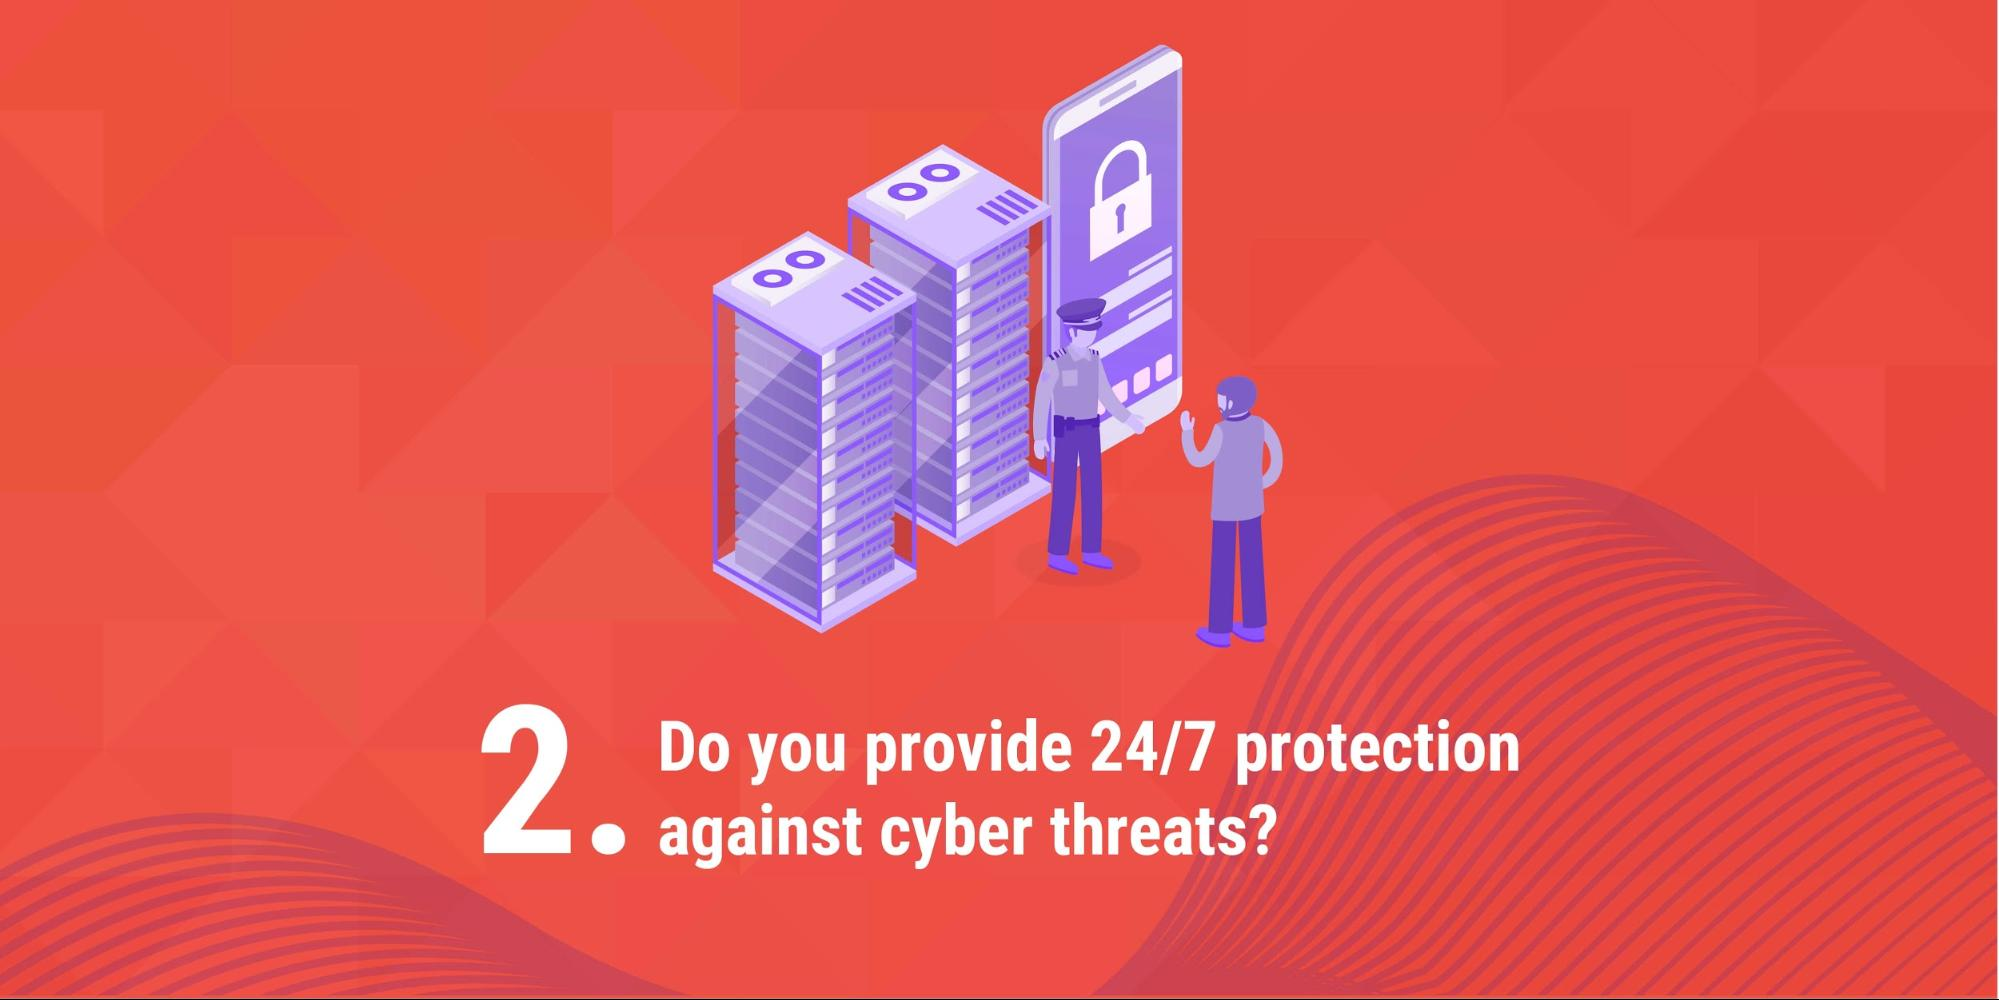 2. Do you provide 24/7 protection against cyber threats?